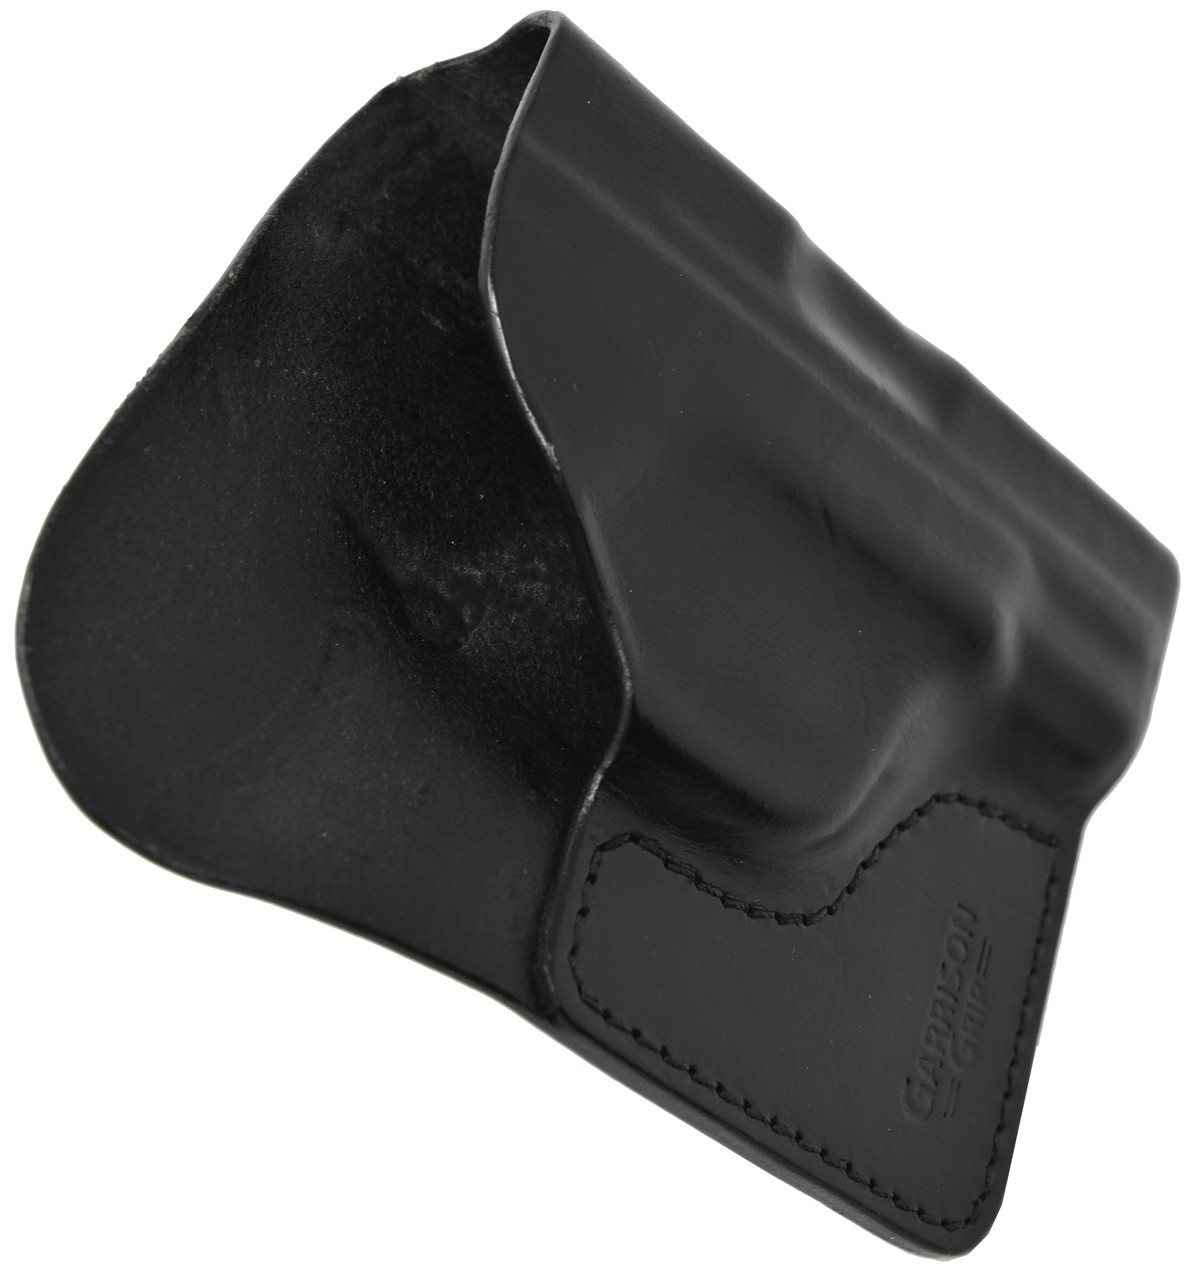 Black Italian Leather Pocket Holster for Remington 380 Auto and Similar Guns